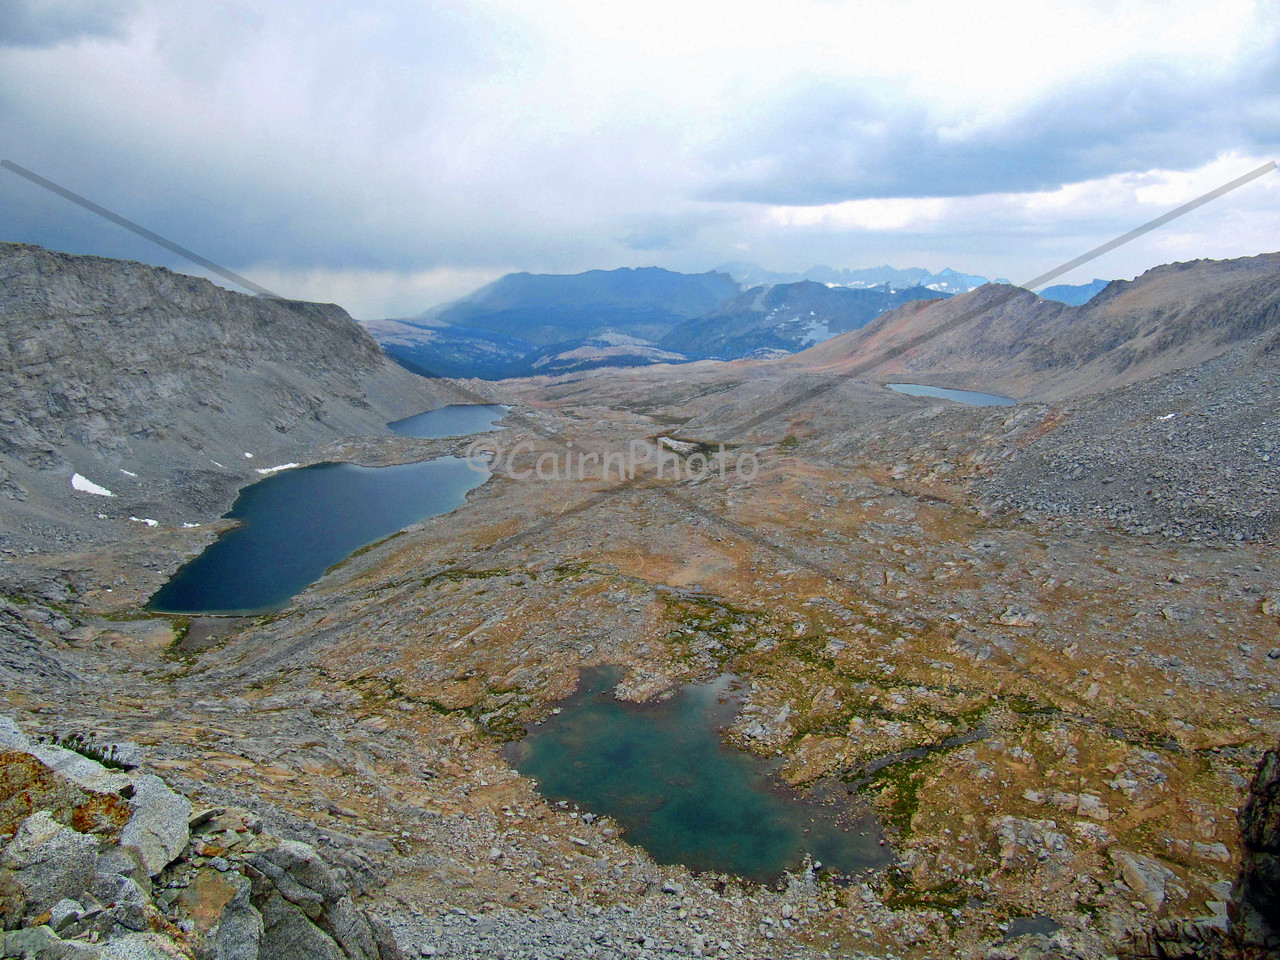 Looking south from Forester Pass on a stormy afternoon.  Forester Pass is 13,153 feet high and is the highest pass on the John Muir Trail.